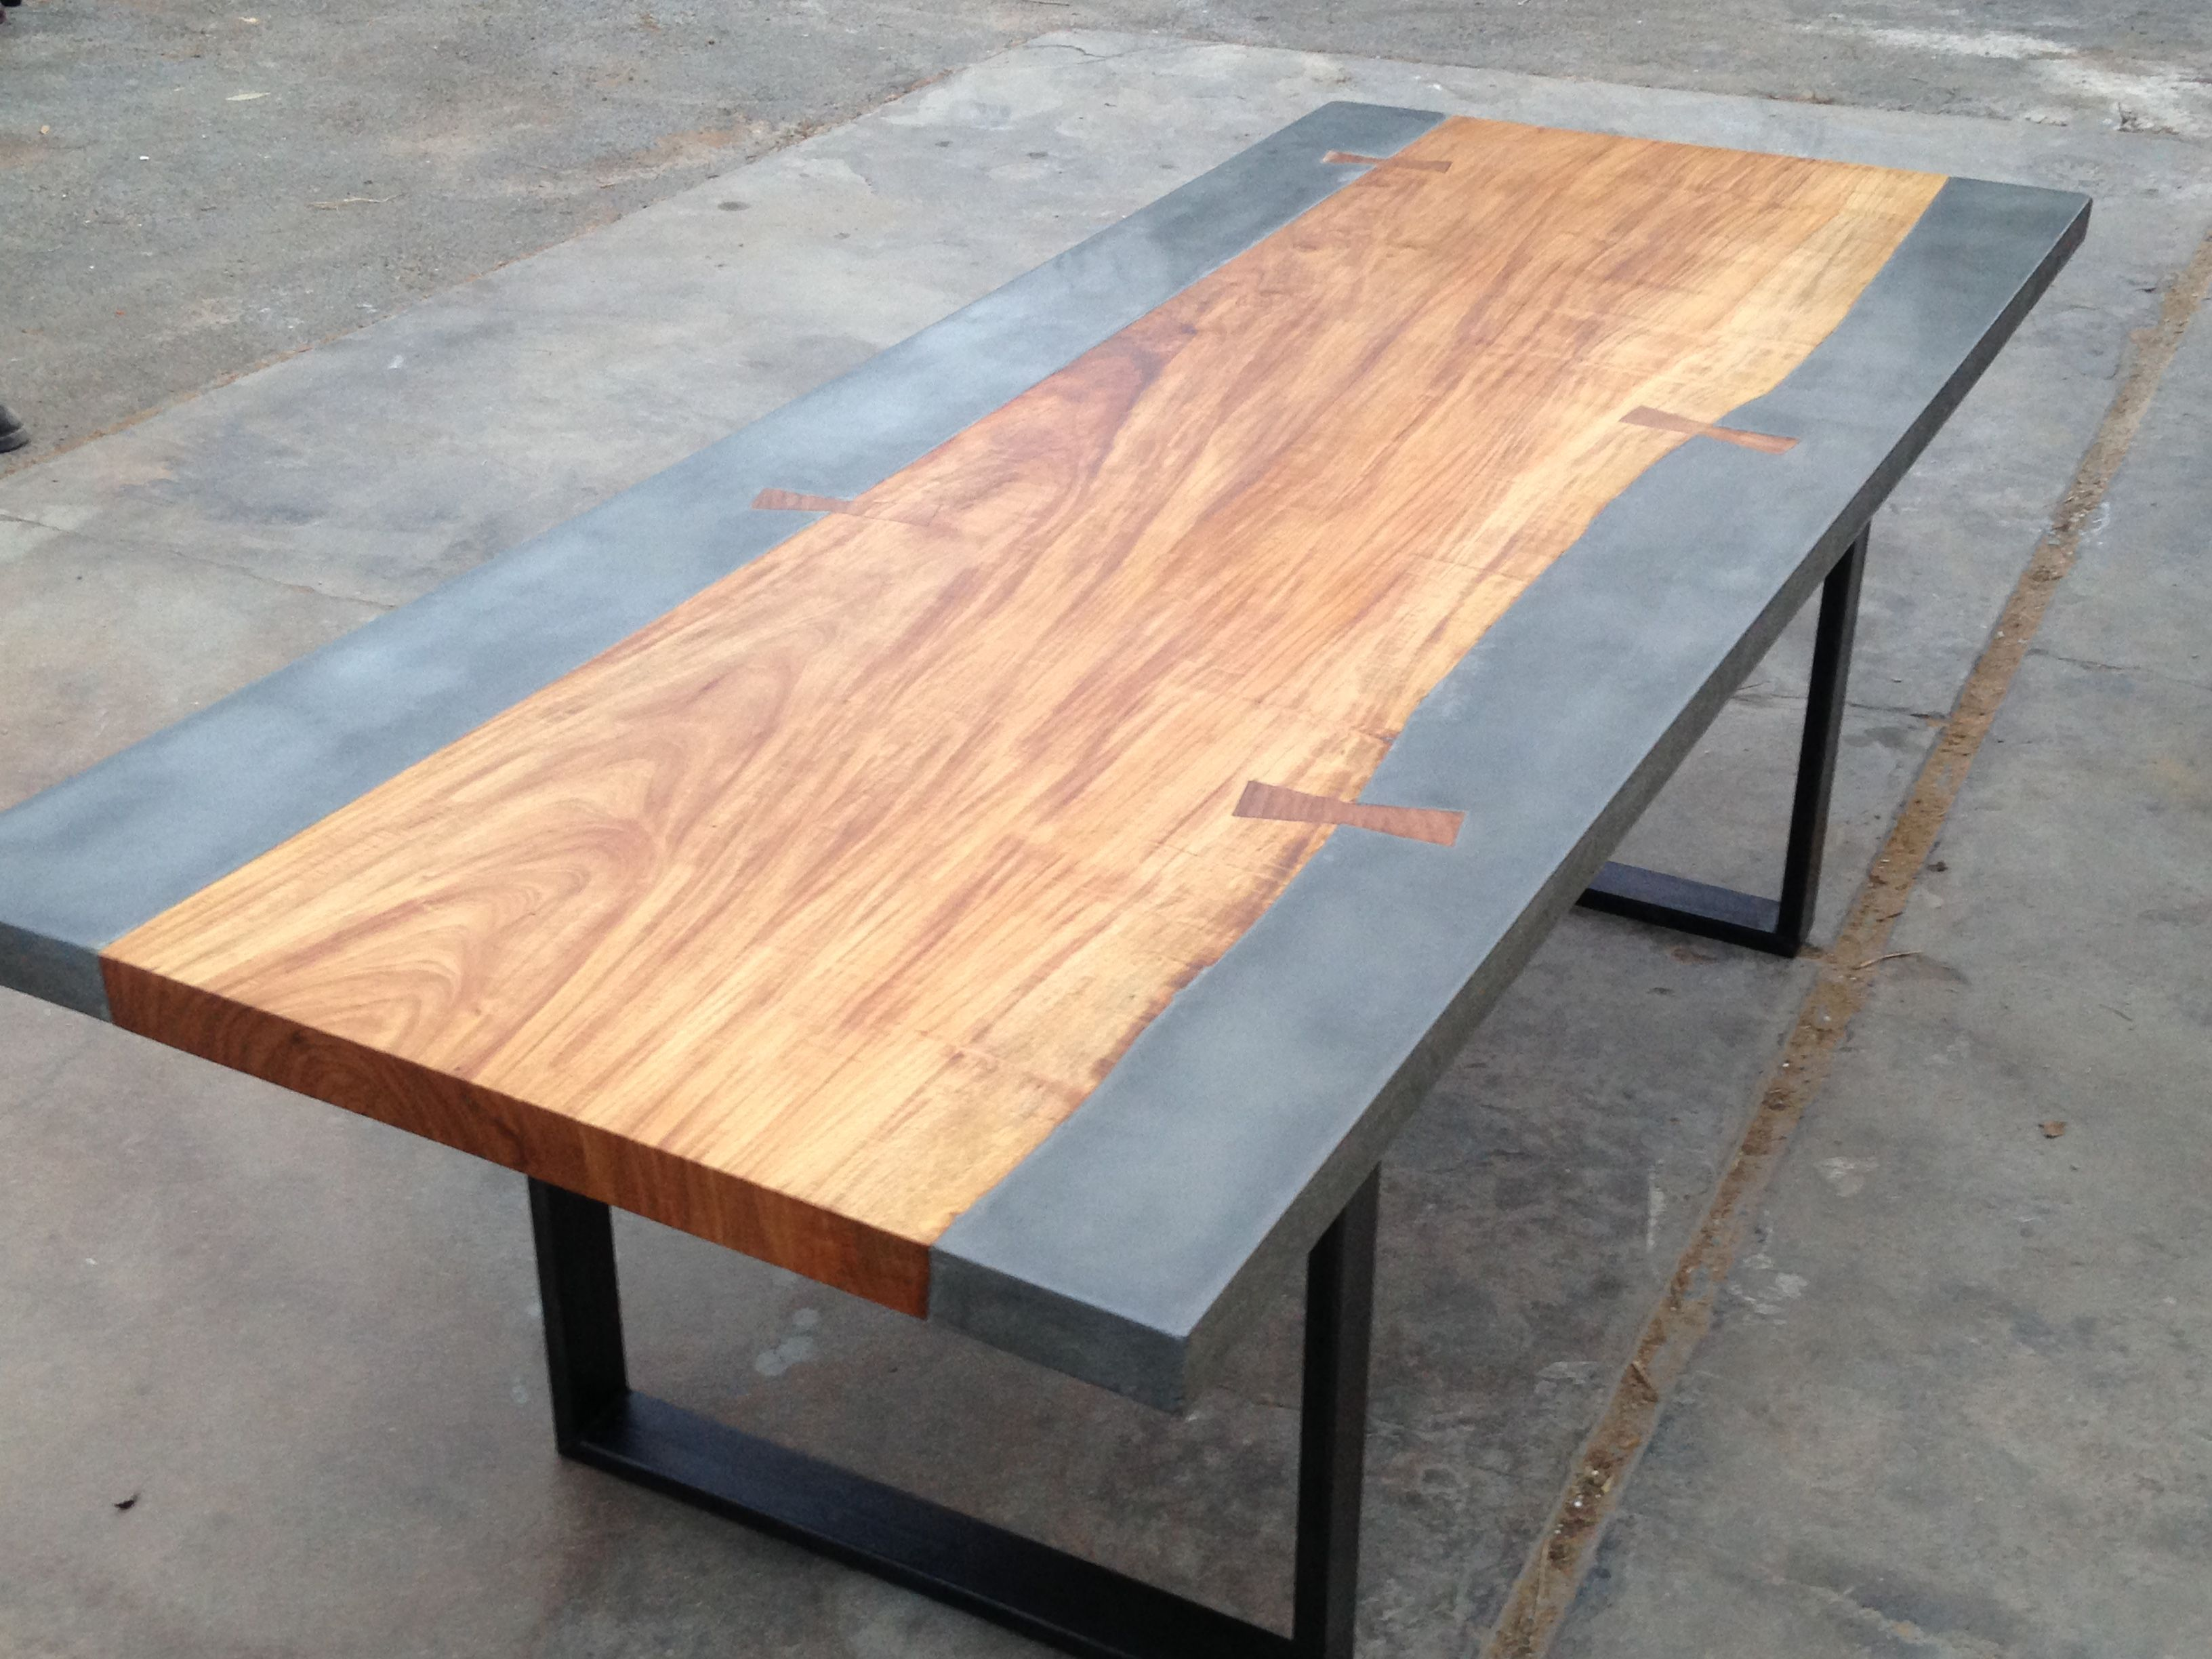 Custom Concrete And Exotic Wood Dining Conference Table By The Timber Library